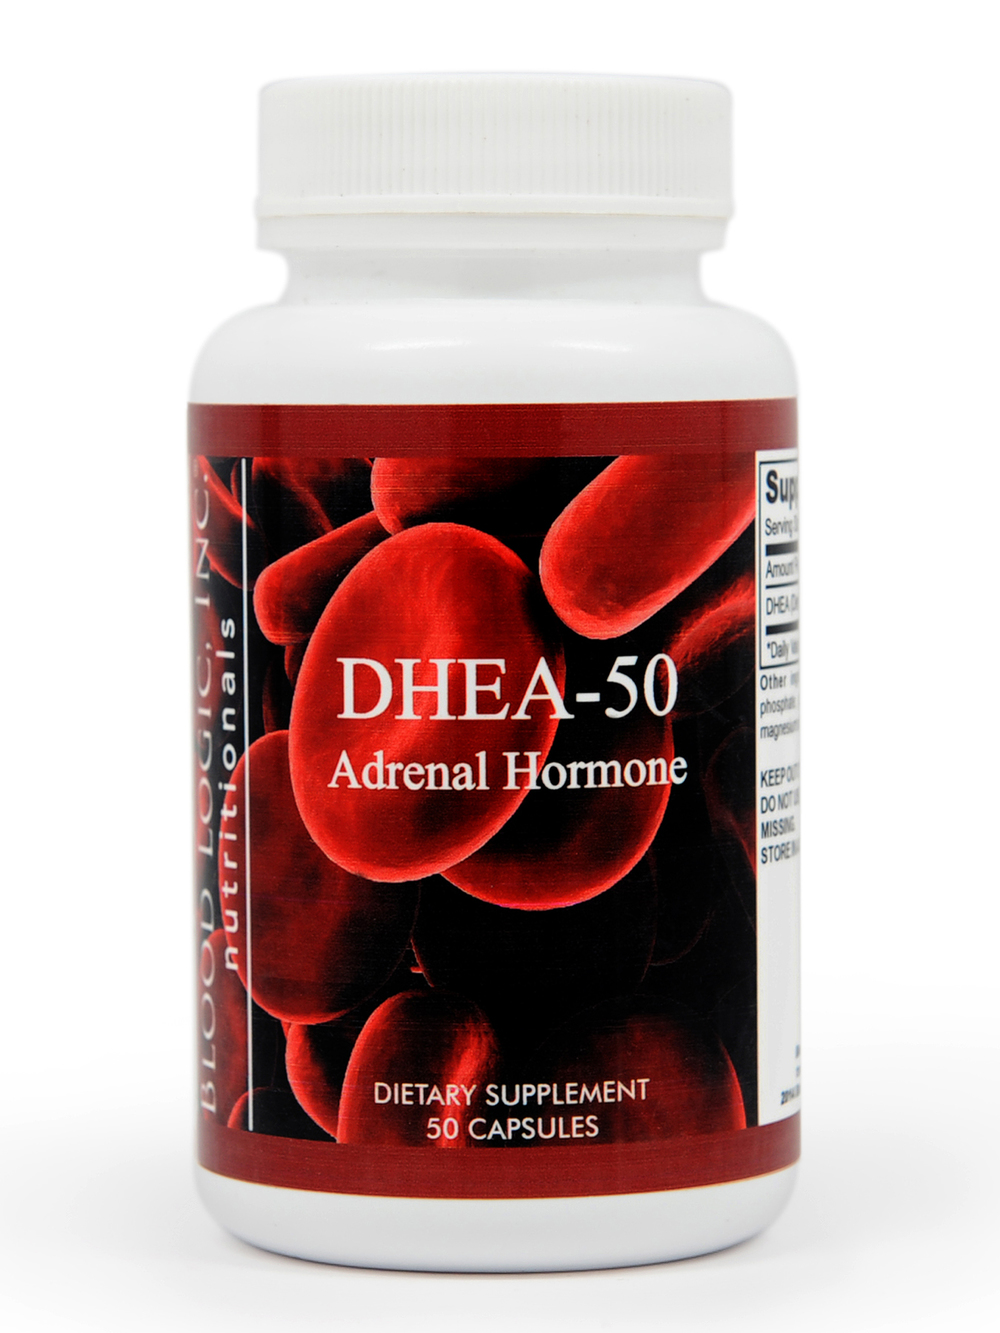 THIS PRODUCT IS CALLED DHEA-25 (AND NOT DHEA-50)